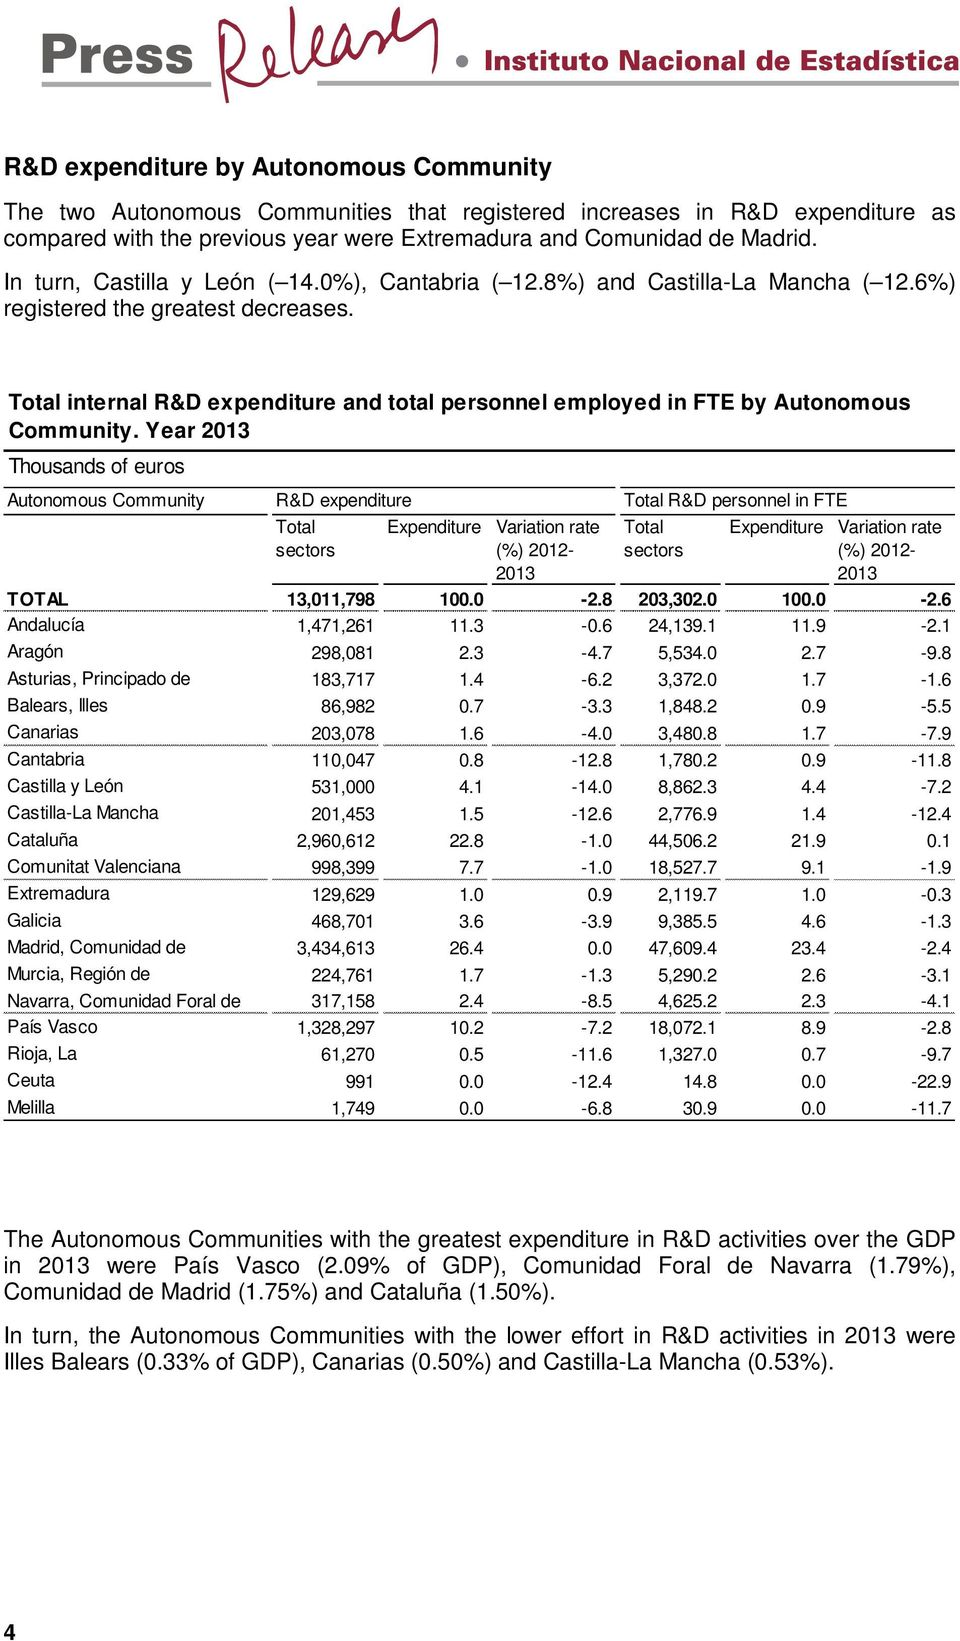 Total internal R&D expenditure and total personnel employed in FTE by Autonomous Community.